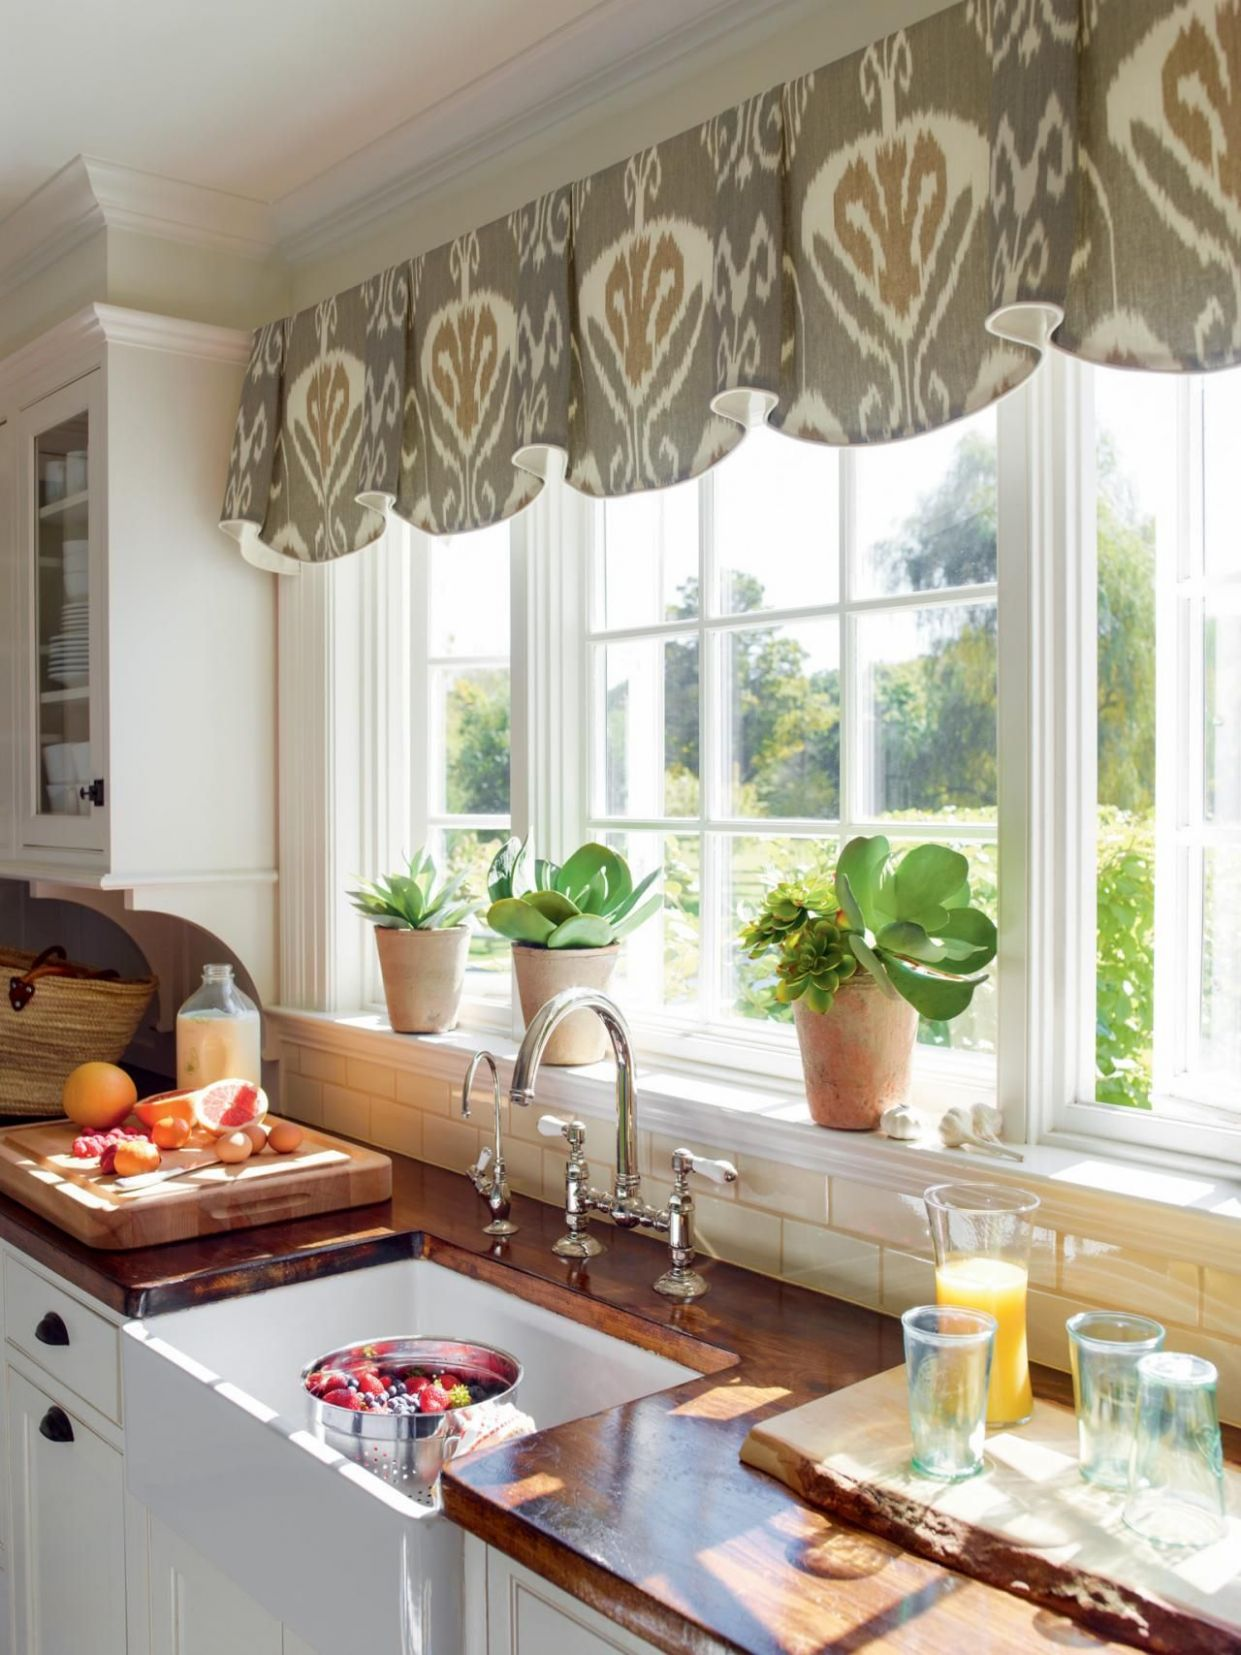 Creative Kitchen Window Treatments: HGTV Pictures & Ideas (With ..